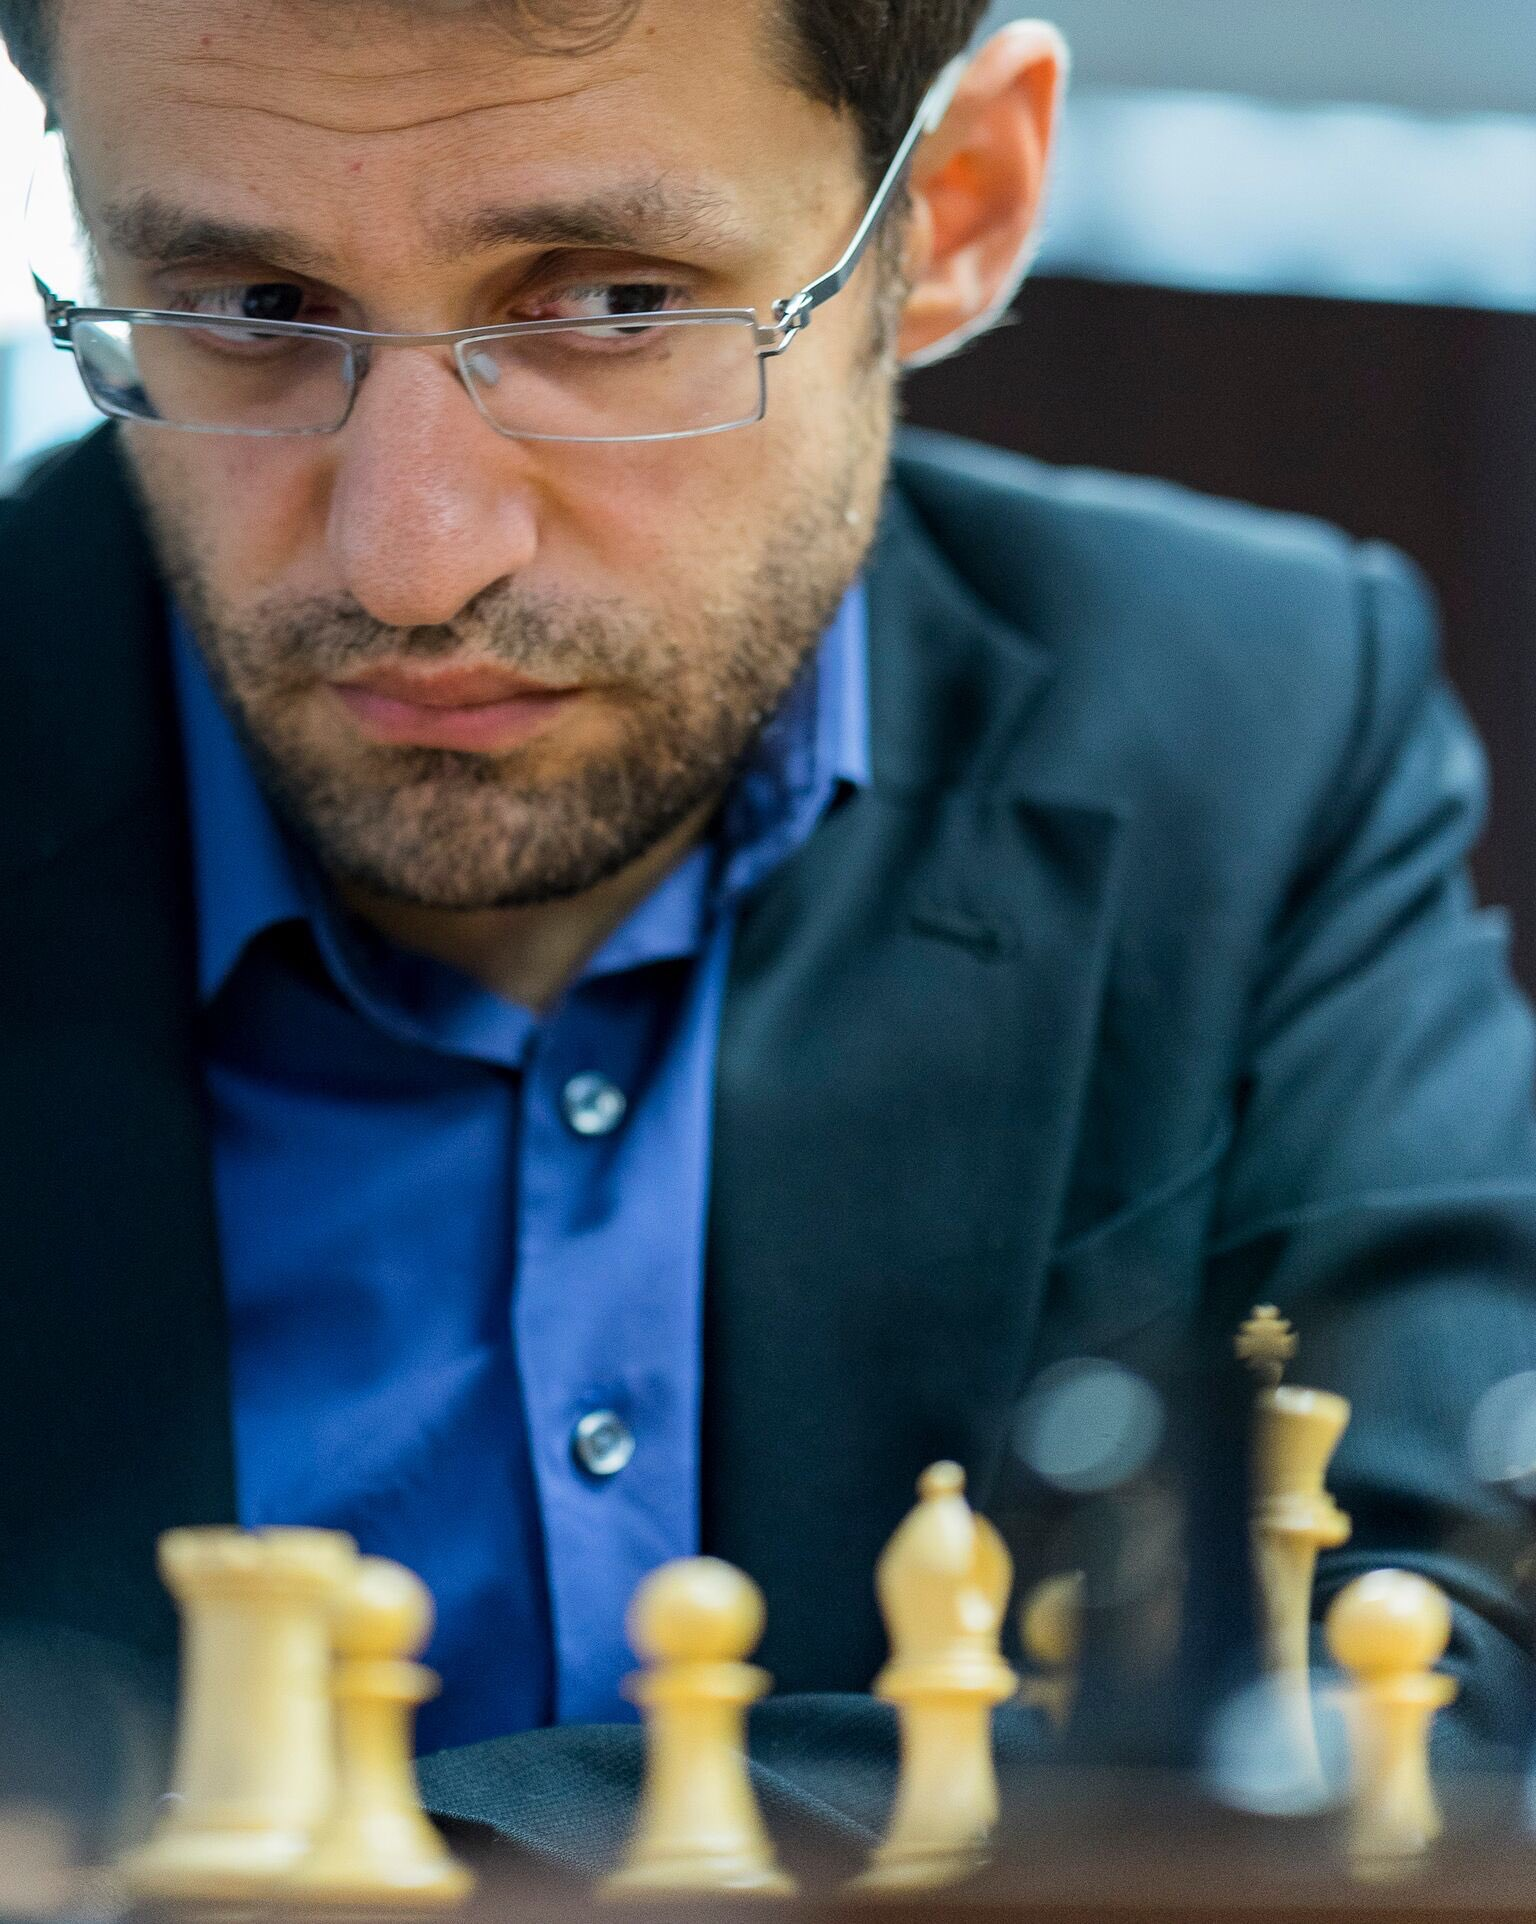 Levon Aronian in Sinquefield Cup 2016